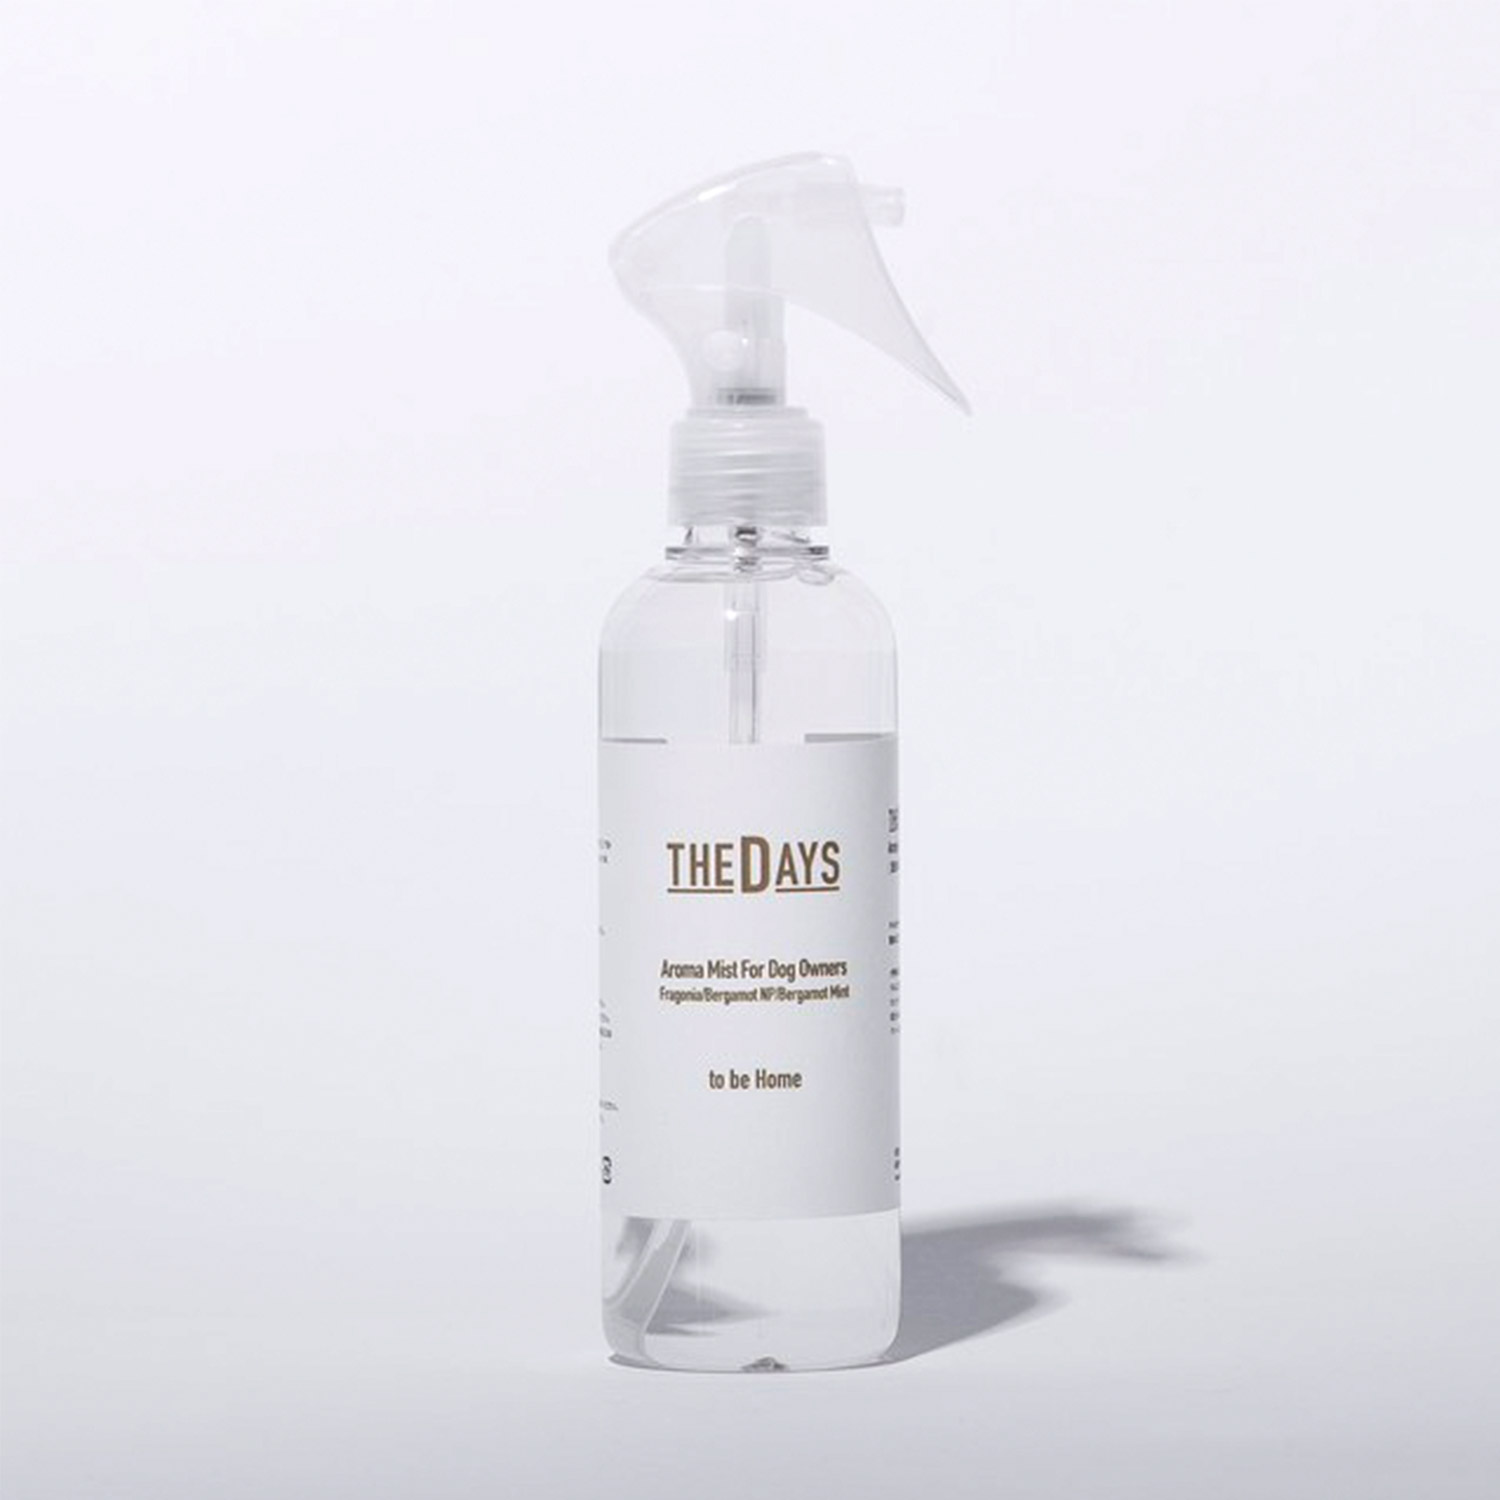 Aroma Mist For Dog Owners 250ml